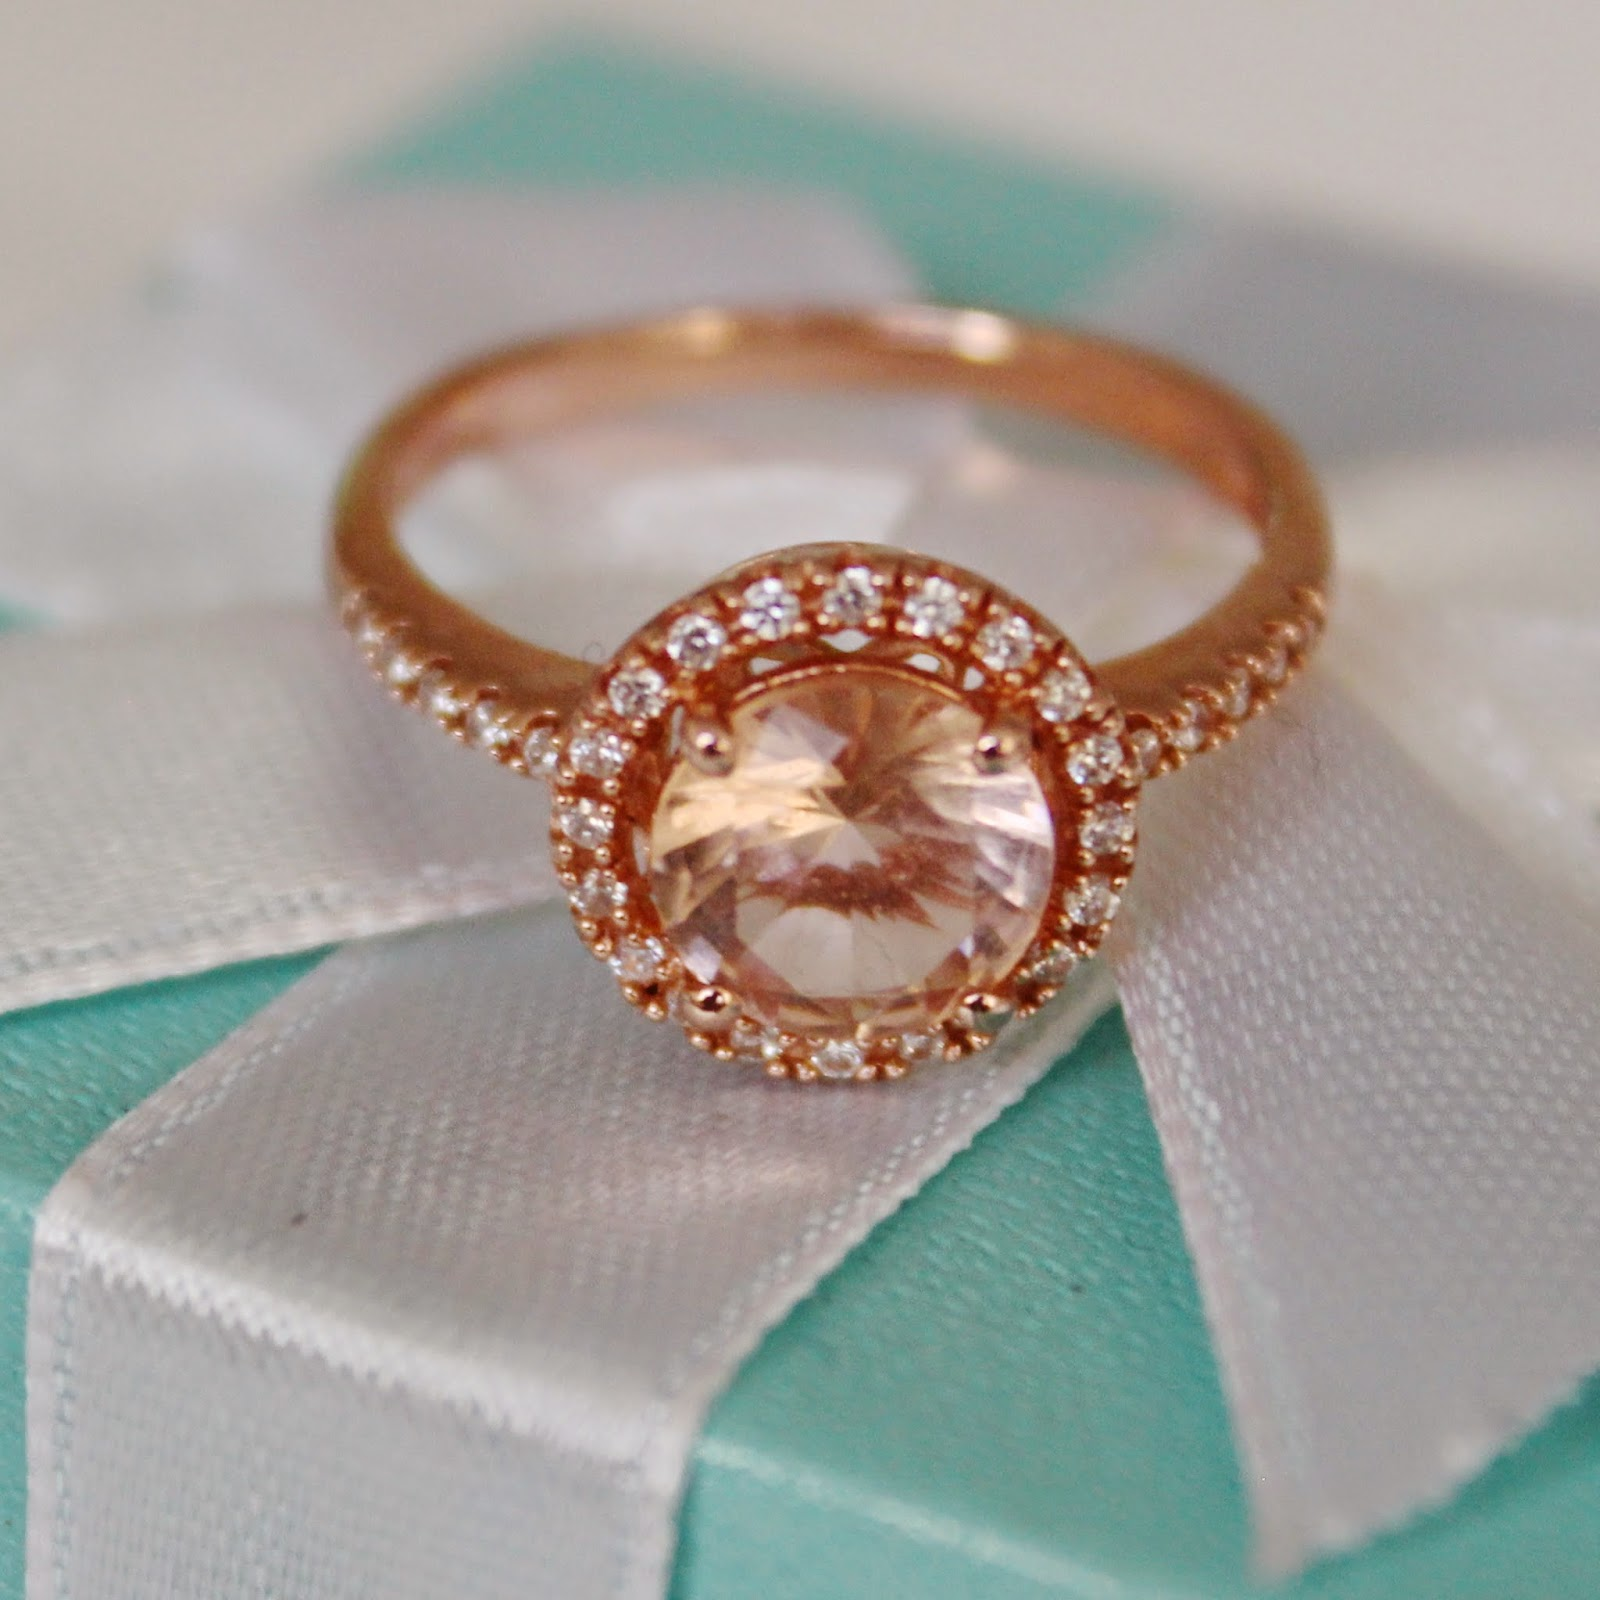 This Is The Diamonique And Simulated Morganite Rose Gold Plated Ring I  Didn't Mention That Alongside My Rose Gold Obsession, I've Also Recently  Discovered